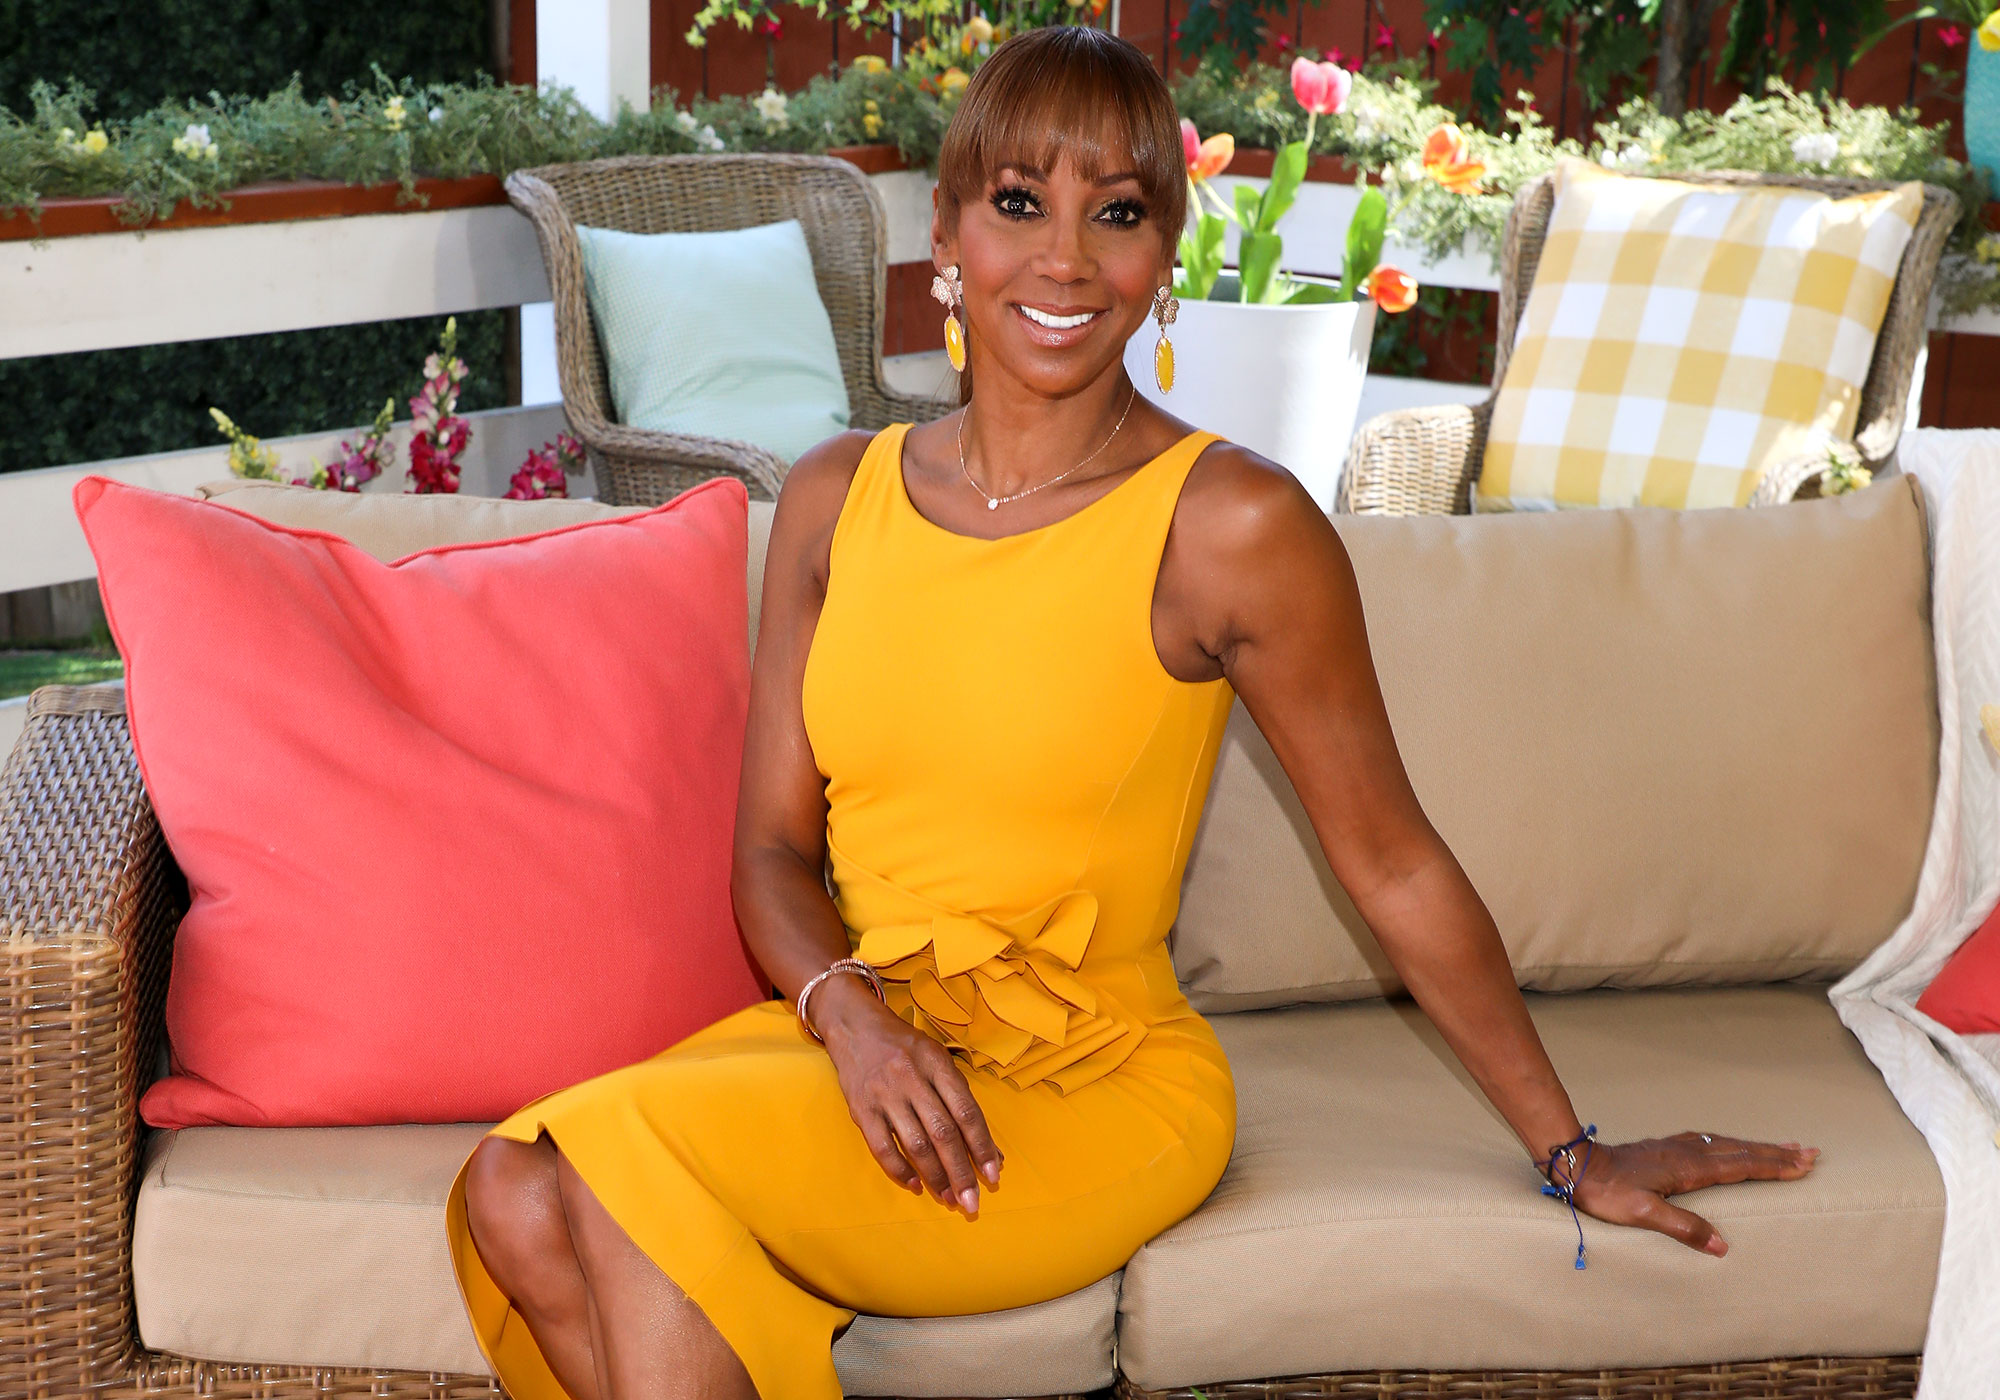 """Advice From Mothers Holly Robinson Peete - """"When I had twins, she told me to get them on the same schedule. So I had these two babies and get them to sleep on the same schedule, and you gotta be hardcore, you gotta be really gangster about it,"""" the actress quips to Us . """"It's one thing to let one baby cry, but when two babies are crying at the same time, it crushes your soul. But she was like, 'You gotta be hardcore,' and she did a lot of it for me. She's like, 'You go away. You go away. You can't handle. You're lactating, and you just go away.' So the best advice was just, 'Get those kids together so you can get some sleep.'"""""""